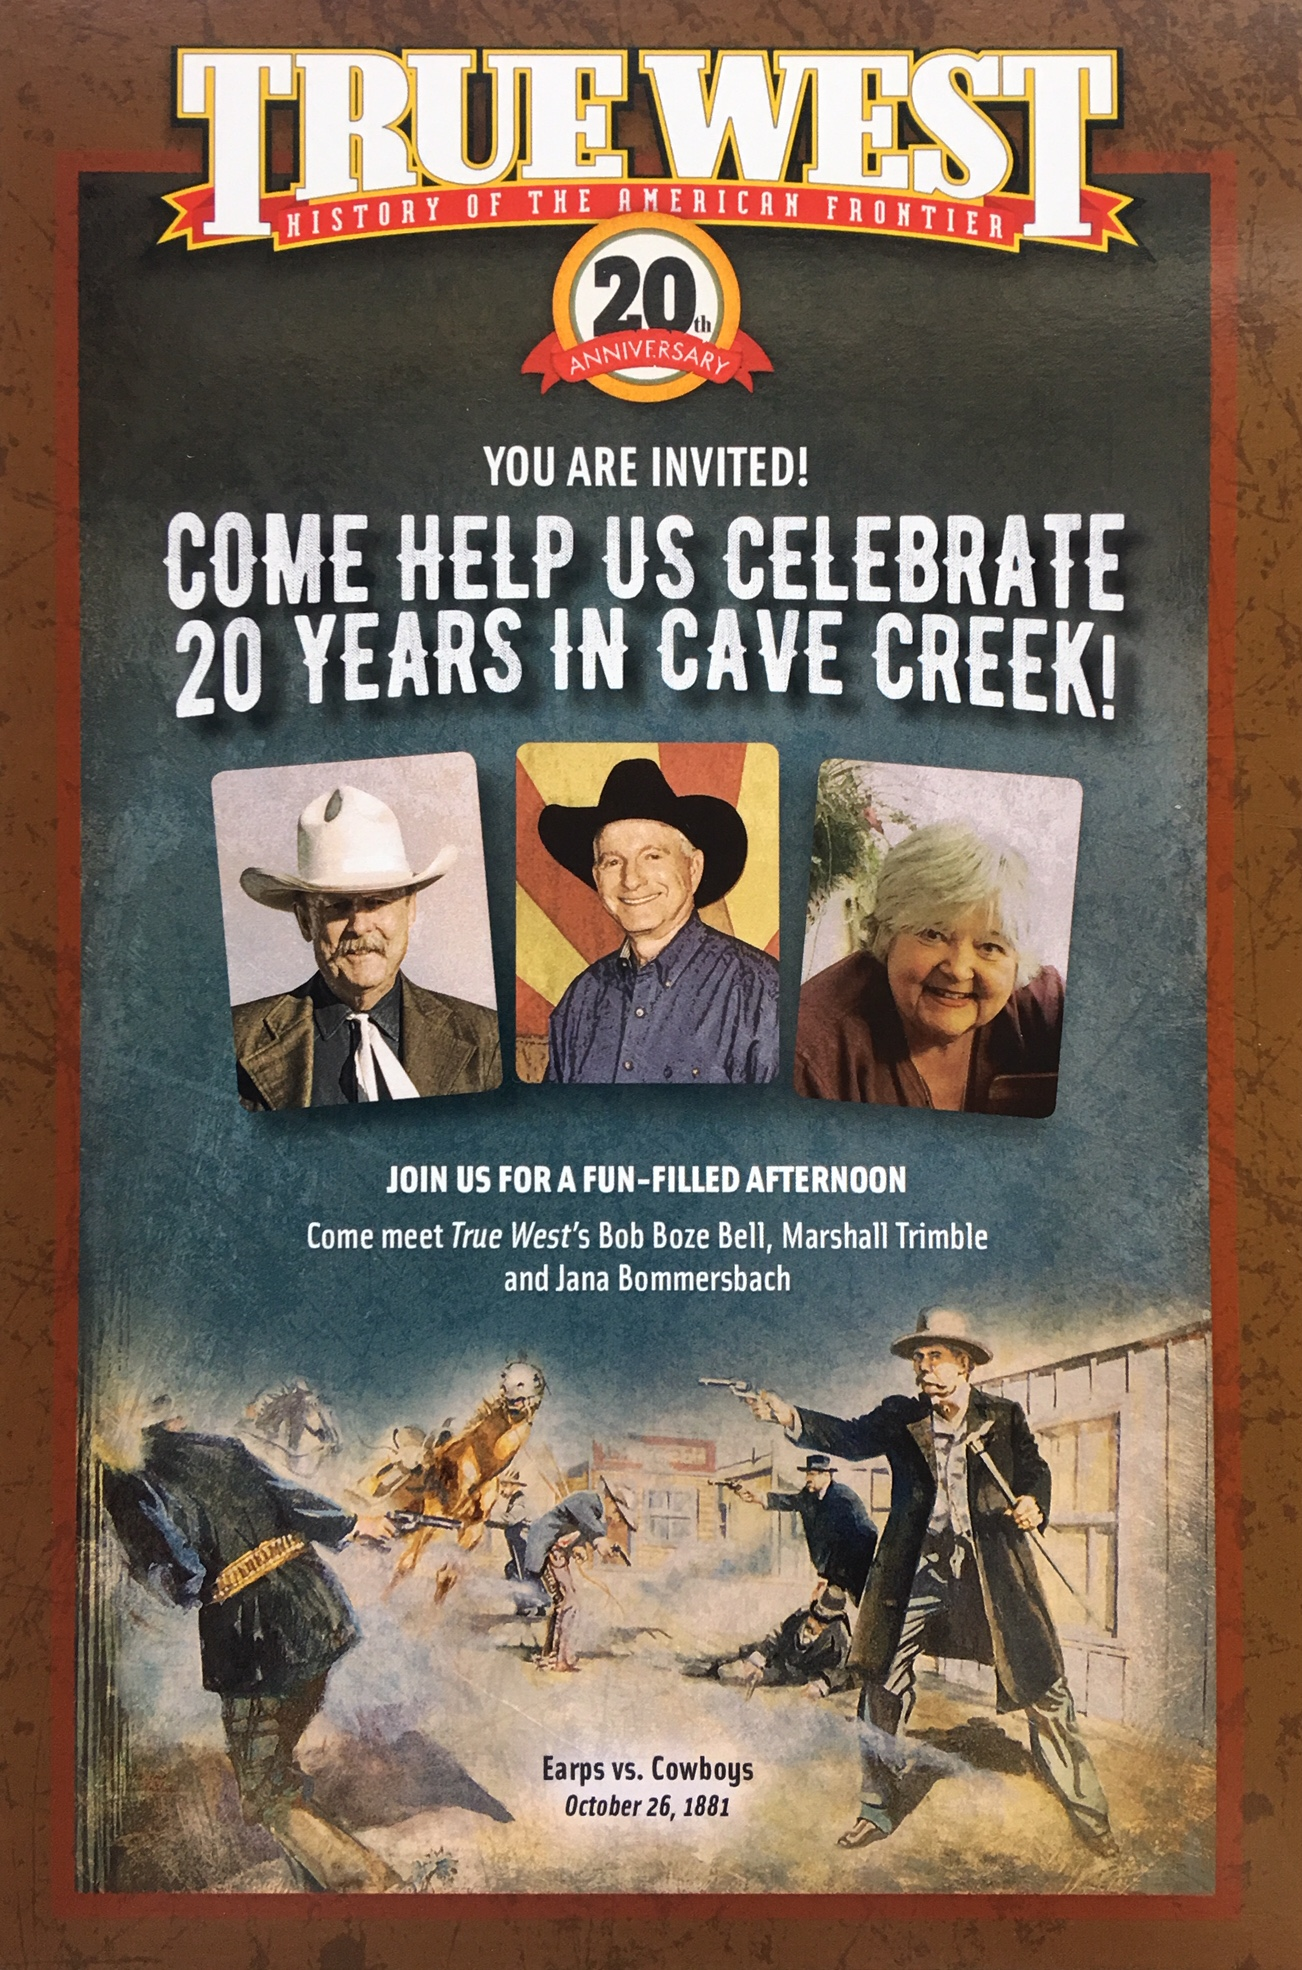 You're Wanted - Come on over to the Desert Foothills Library in Cave Creek and celebrate the 20th Anniversary of True West Magazine being in the best damn town in the West! Come meet True West's Bob Boze Bell, Marshall Trimble and Janna Bommersbach – each will tell a tale or two straight out of the Old West.Seating is limited: RSVP at https://dfla.org/events/true-west/ or call 480-488-2286